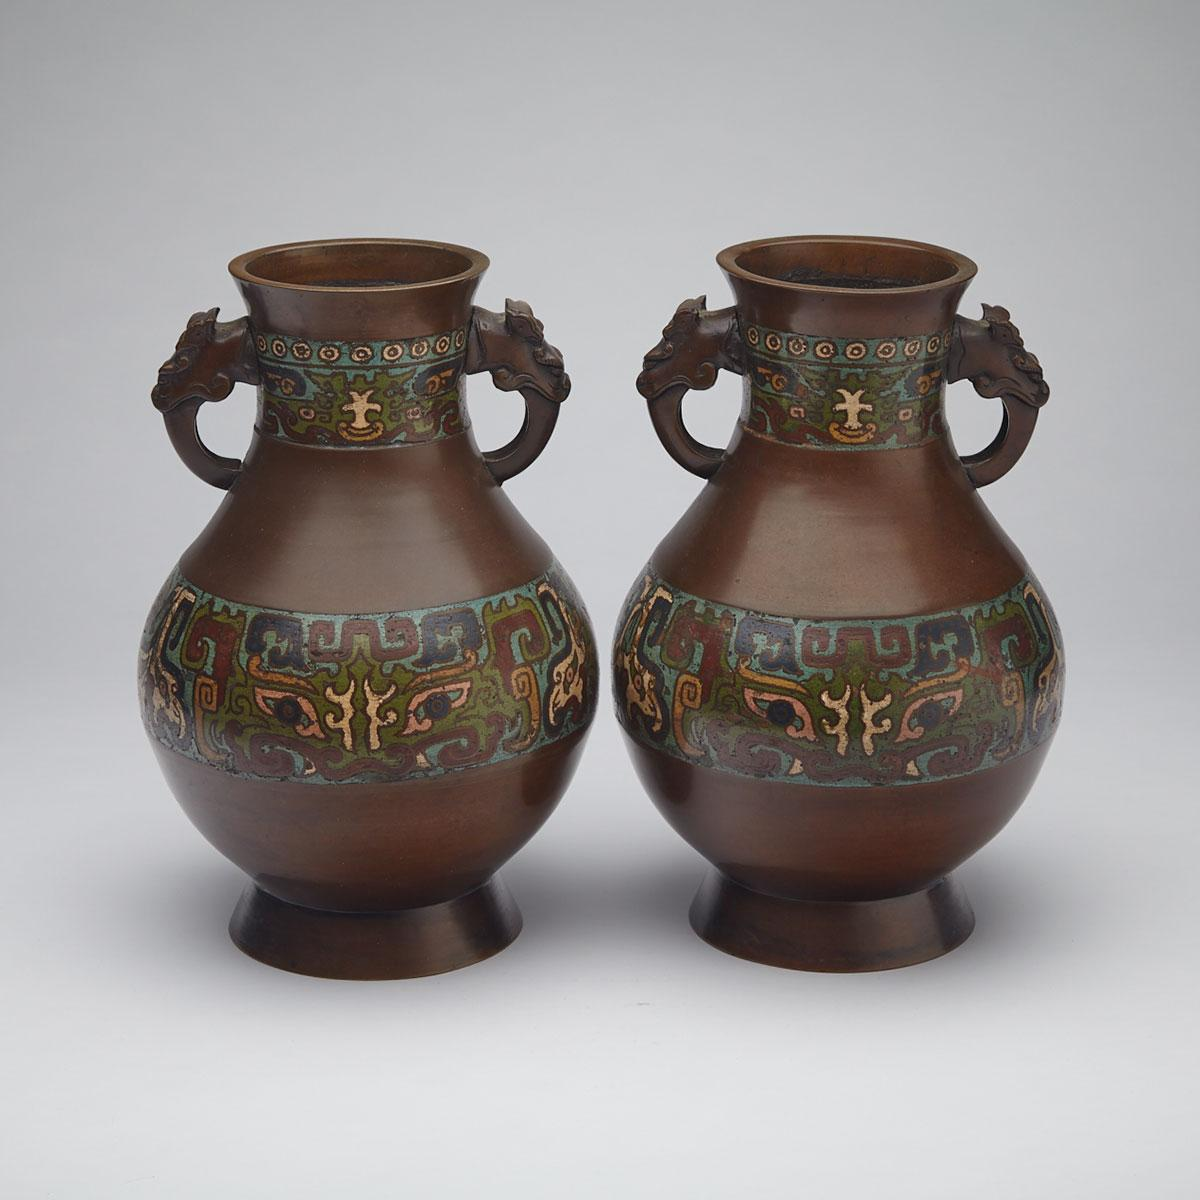 Pair of Champlevee Enamel Vases, Signed, Taisho Period, Early 20th Century